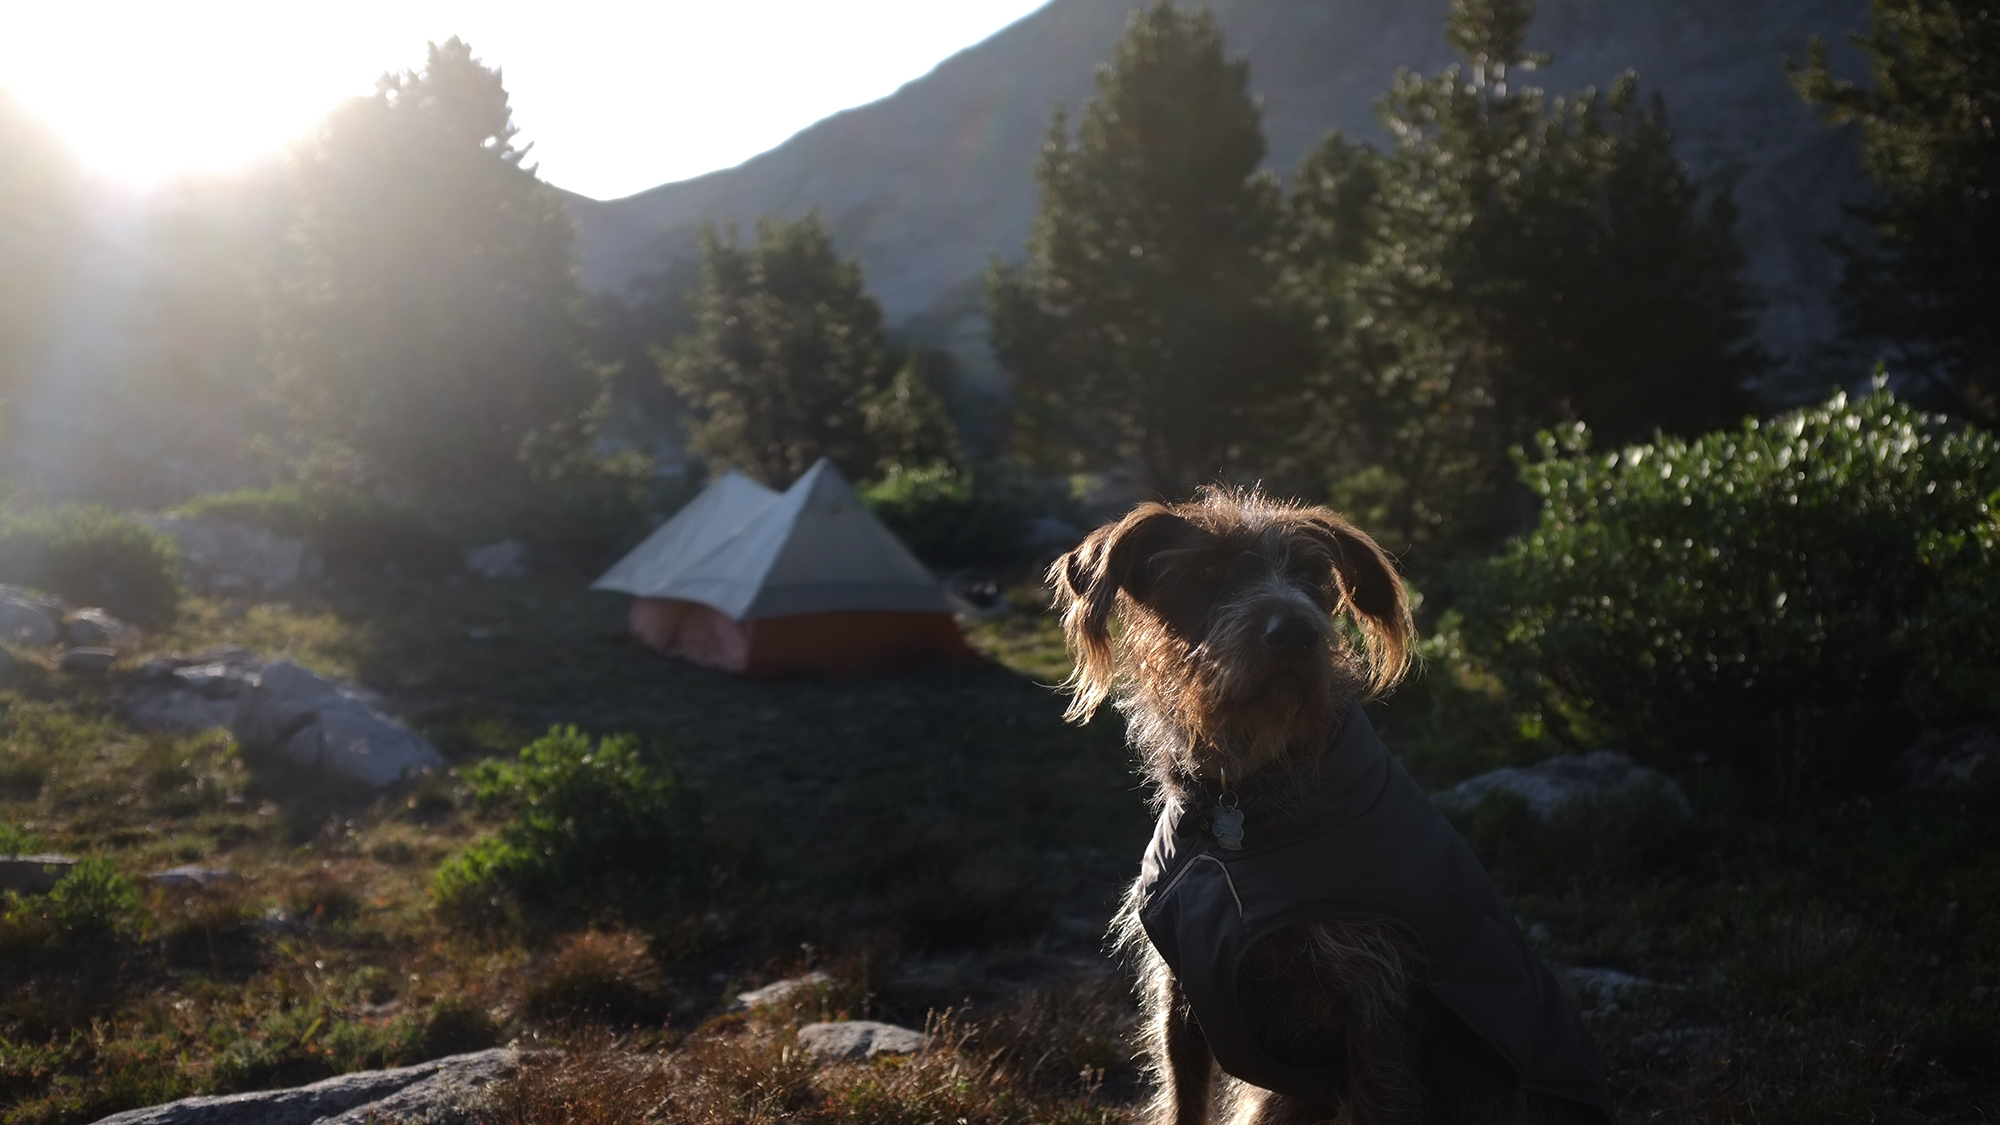 Baxter at camp in the wind rivers